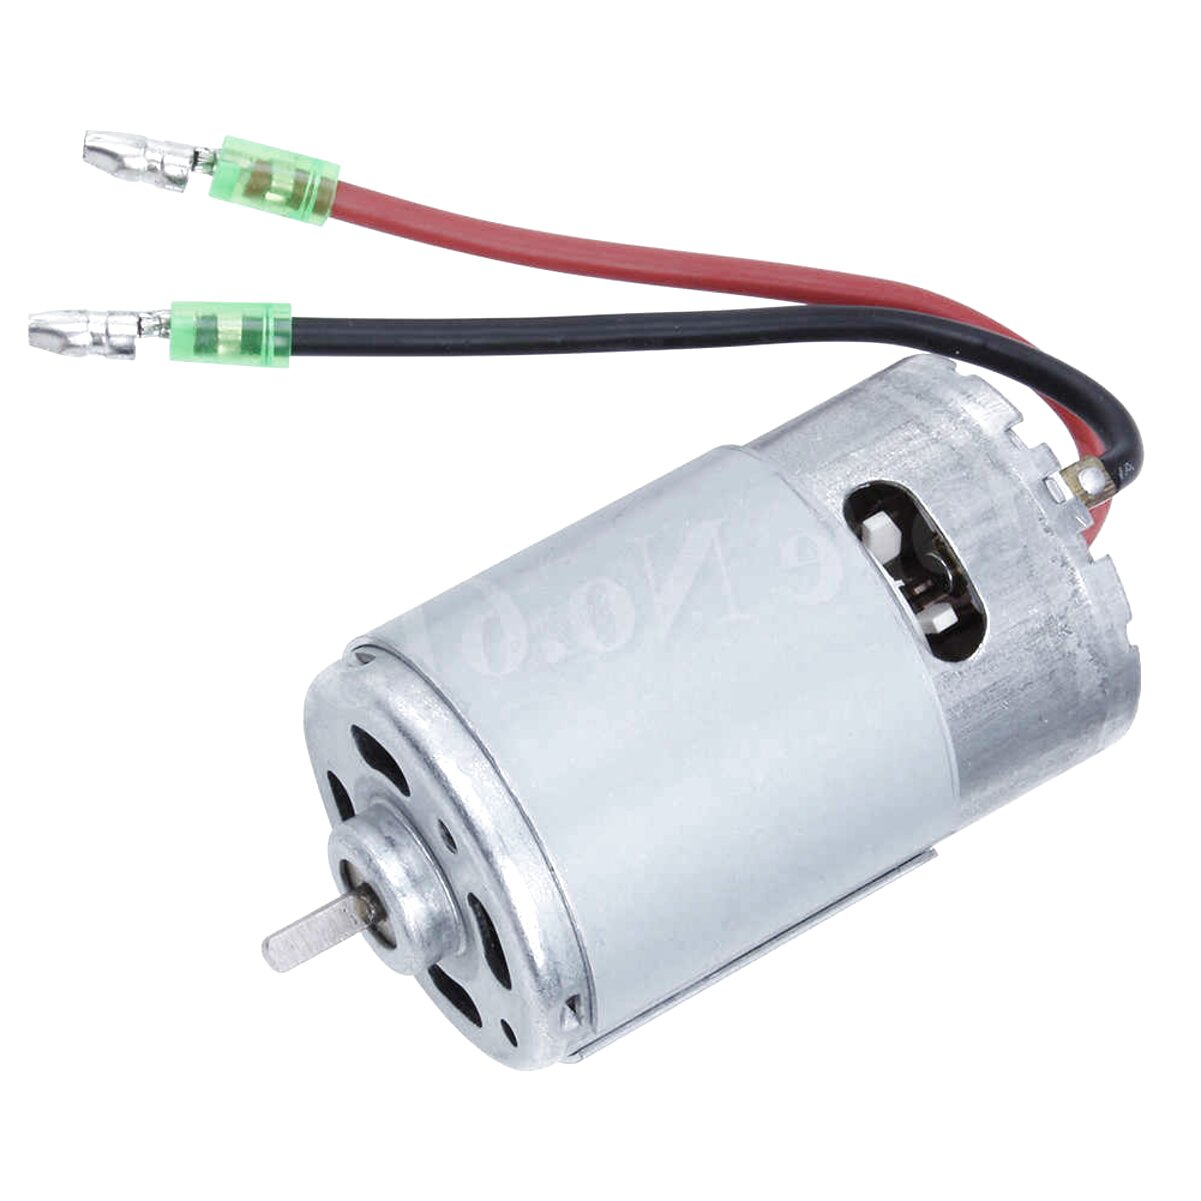 e10 electric motor for sale